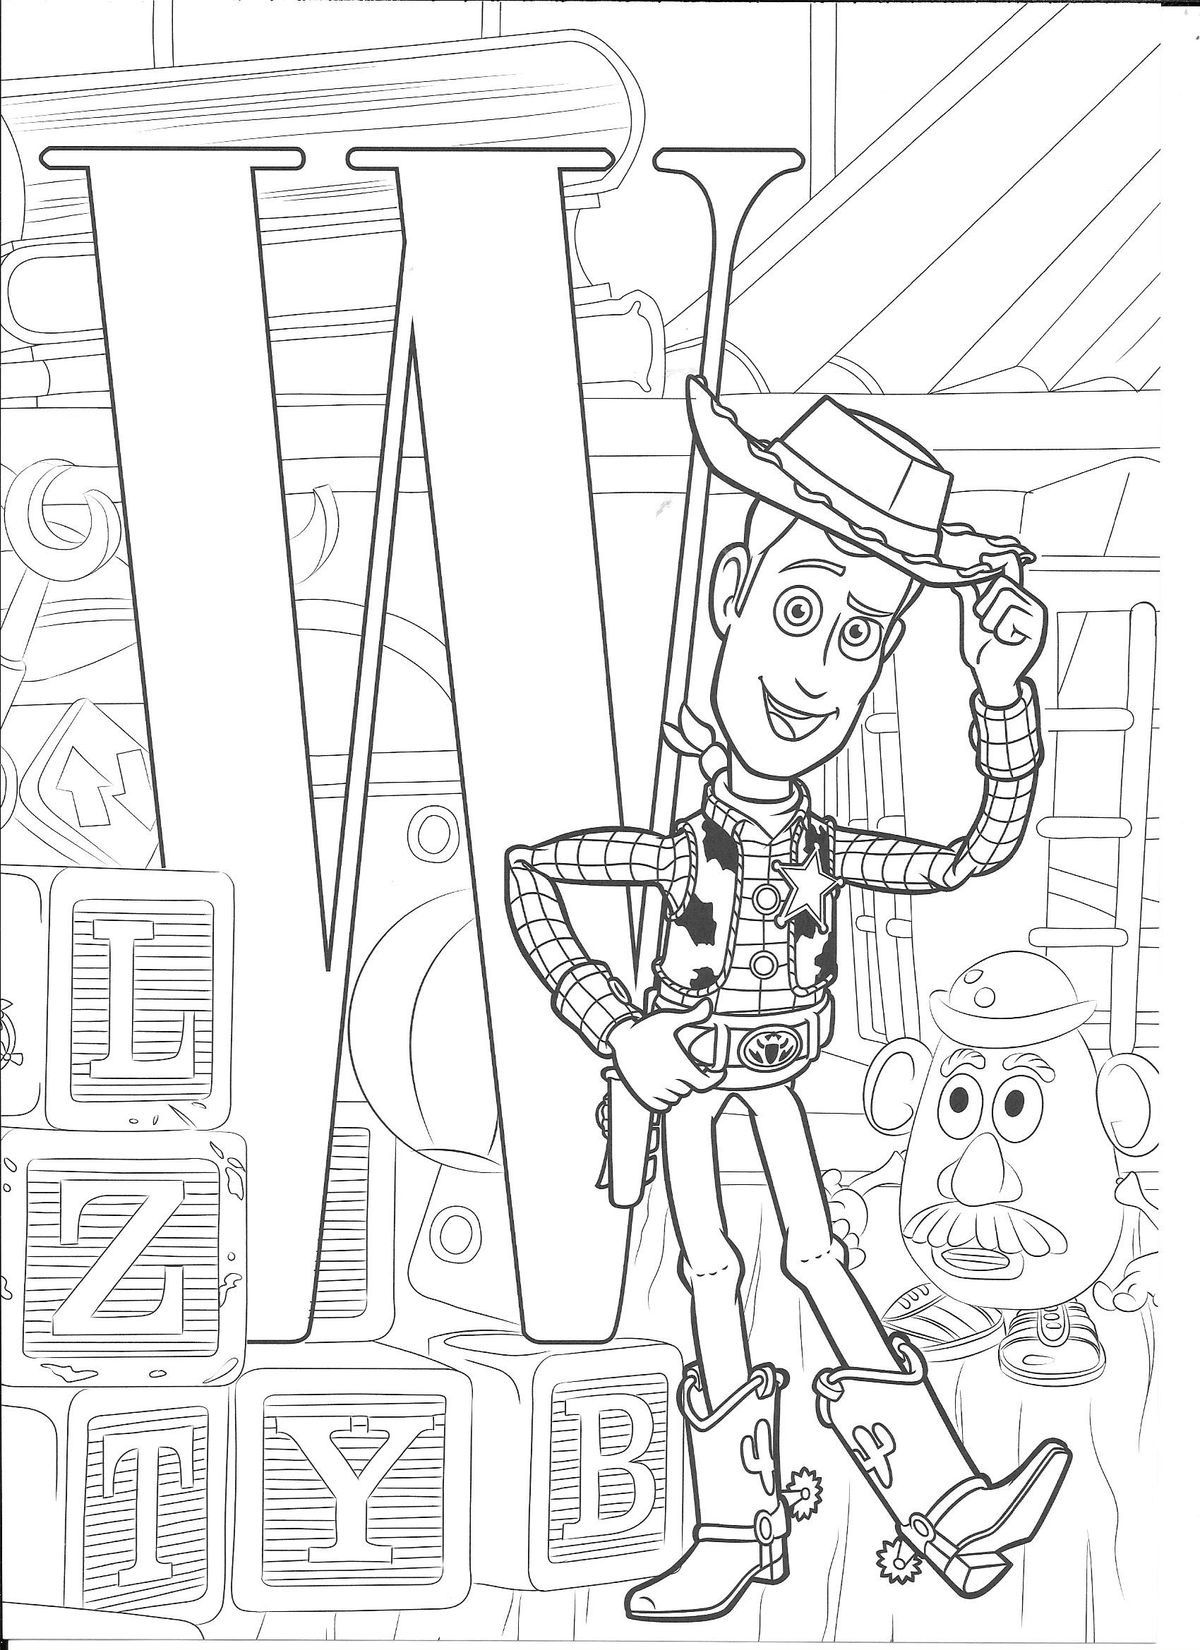 Pin By Melanie C On Alphabet Coloring Sheets Abc Coloring Pages Alphabet Coloring Pages Toy Story Coloring Pages [ 1650 x 1200 Pixel ]